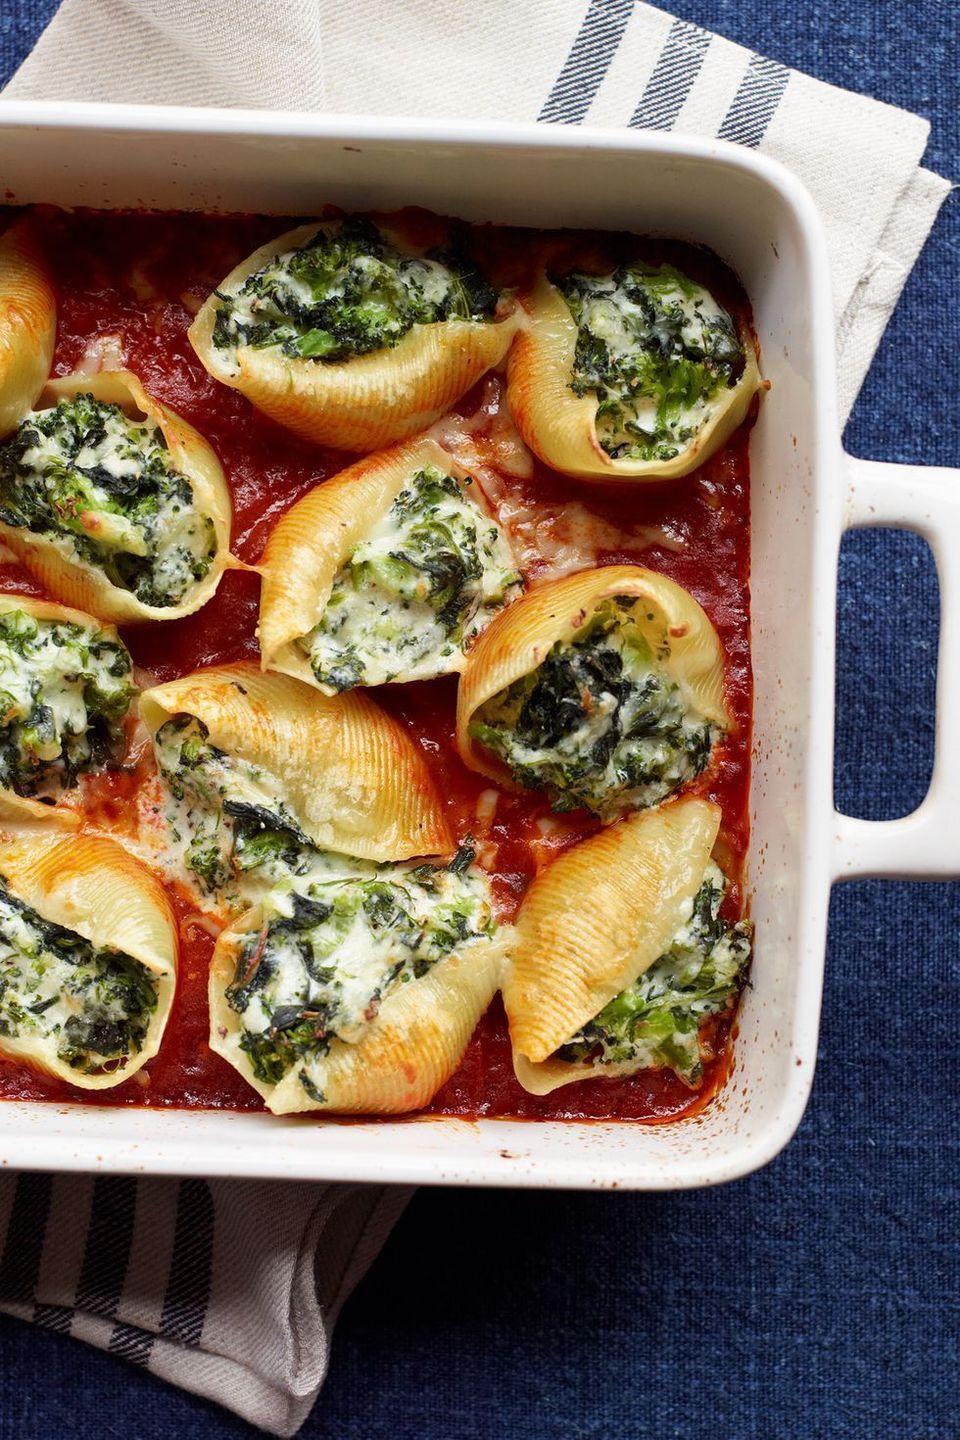 """<p>Vegetarian or non-vegetarian, these cheesy stuffed shells are a classic dish that everyone will go nuts over.</p><p><a href=""""https://www.womansday.com/food-recipes/food-drinks/recipes/a11565/vegetable-three-cheese-stuffed-shells-recipe-123003/"""" rel=""""nofollow noopener"""" target=""""_blank"""" data-ylk=""""slk:Get the Vegetable and Three-Cheese Stuffed Shells recipe."""" class=""""link rapid-noclick-resp""""><em>Get the Vegetable and Three-Cheese Stuffed Shells recipe.</em></a></p>"""